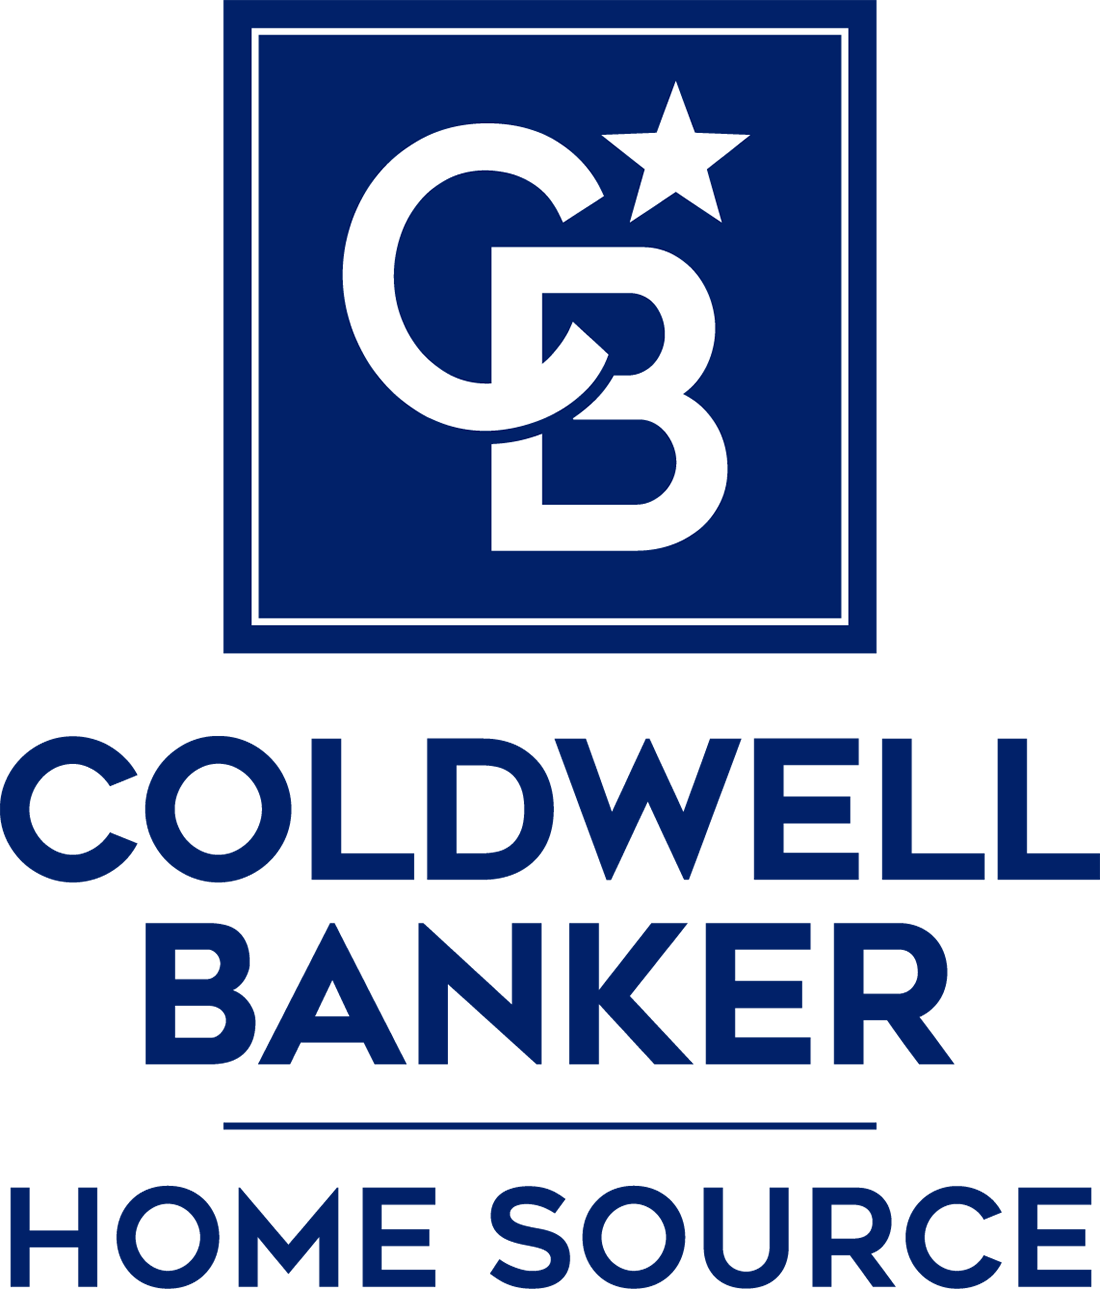 Mac McManus - Coldwell Banker Home Source Logo